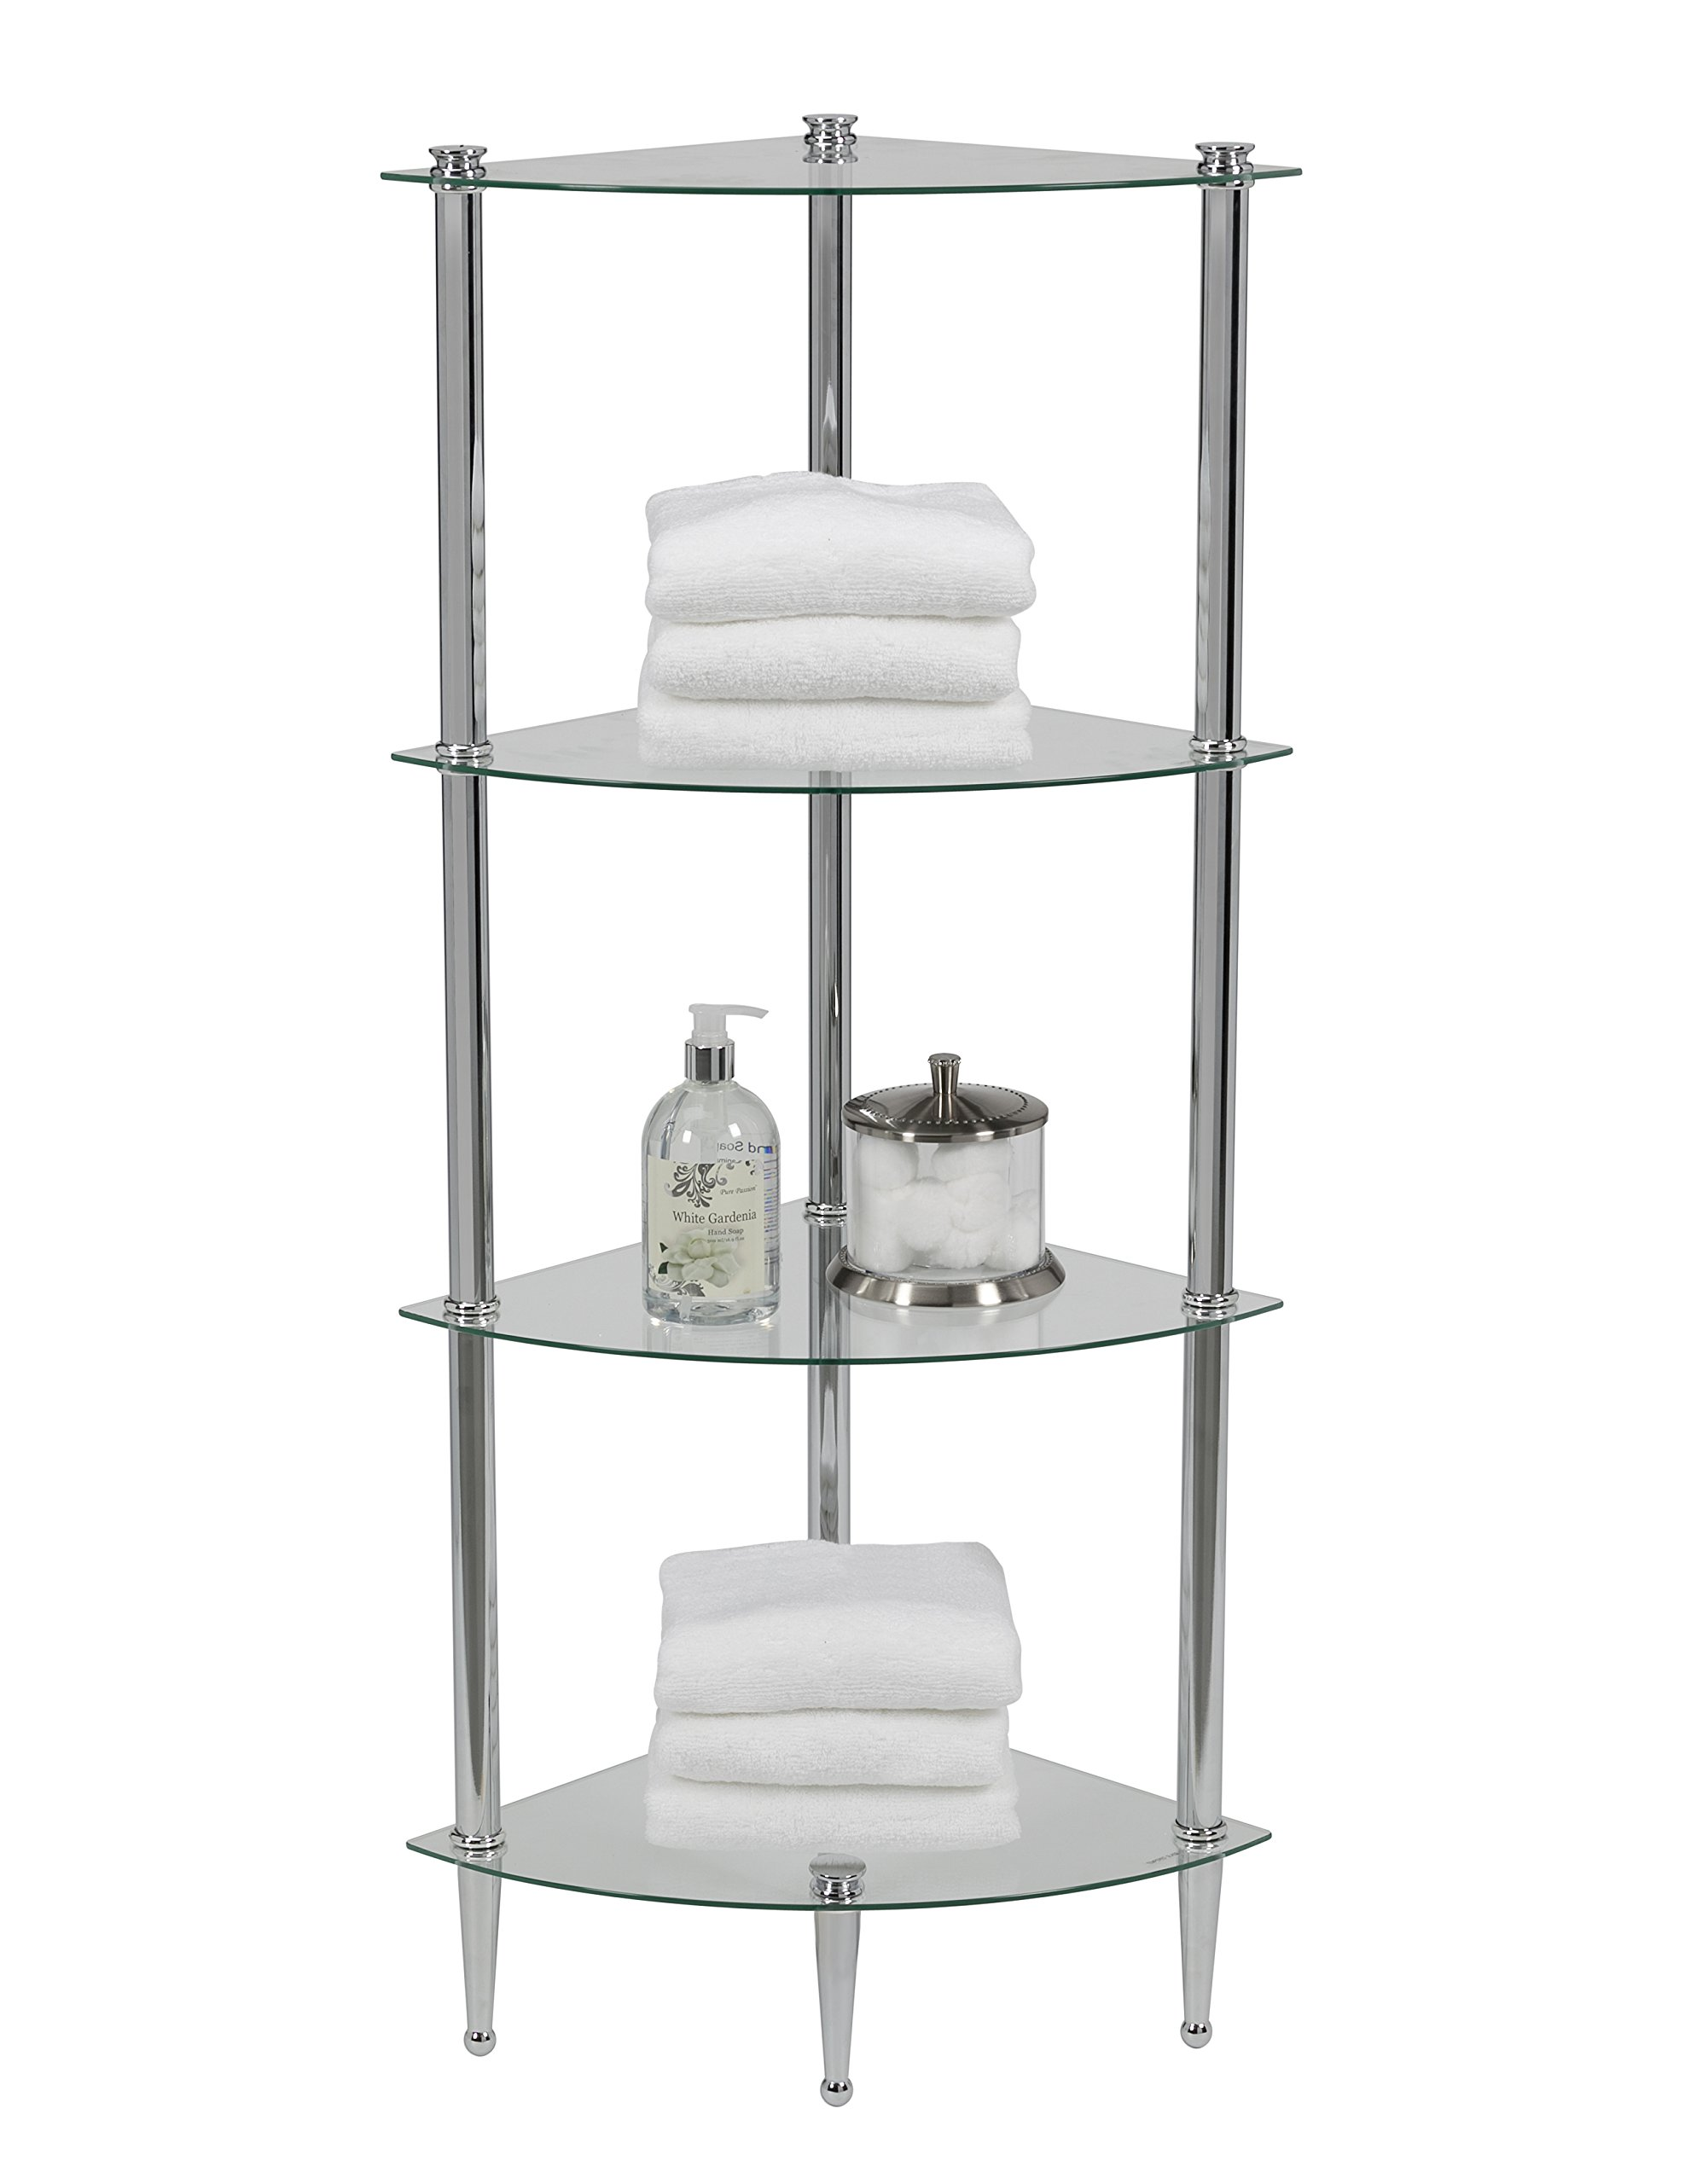 Creative Bath Products L'etagere - Classic & Transitional Series 4 Shelf Corner Tower, Chrome